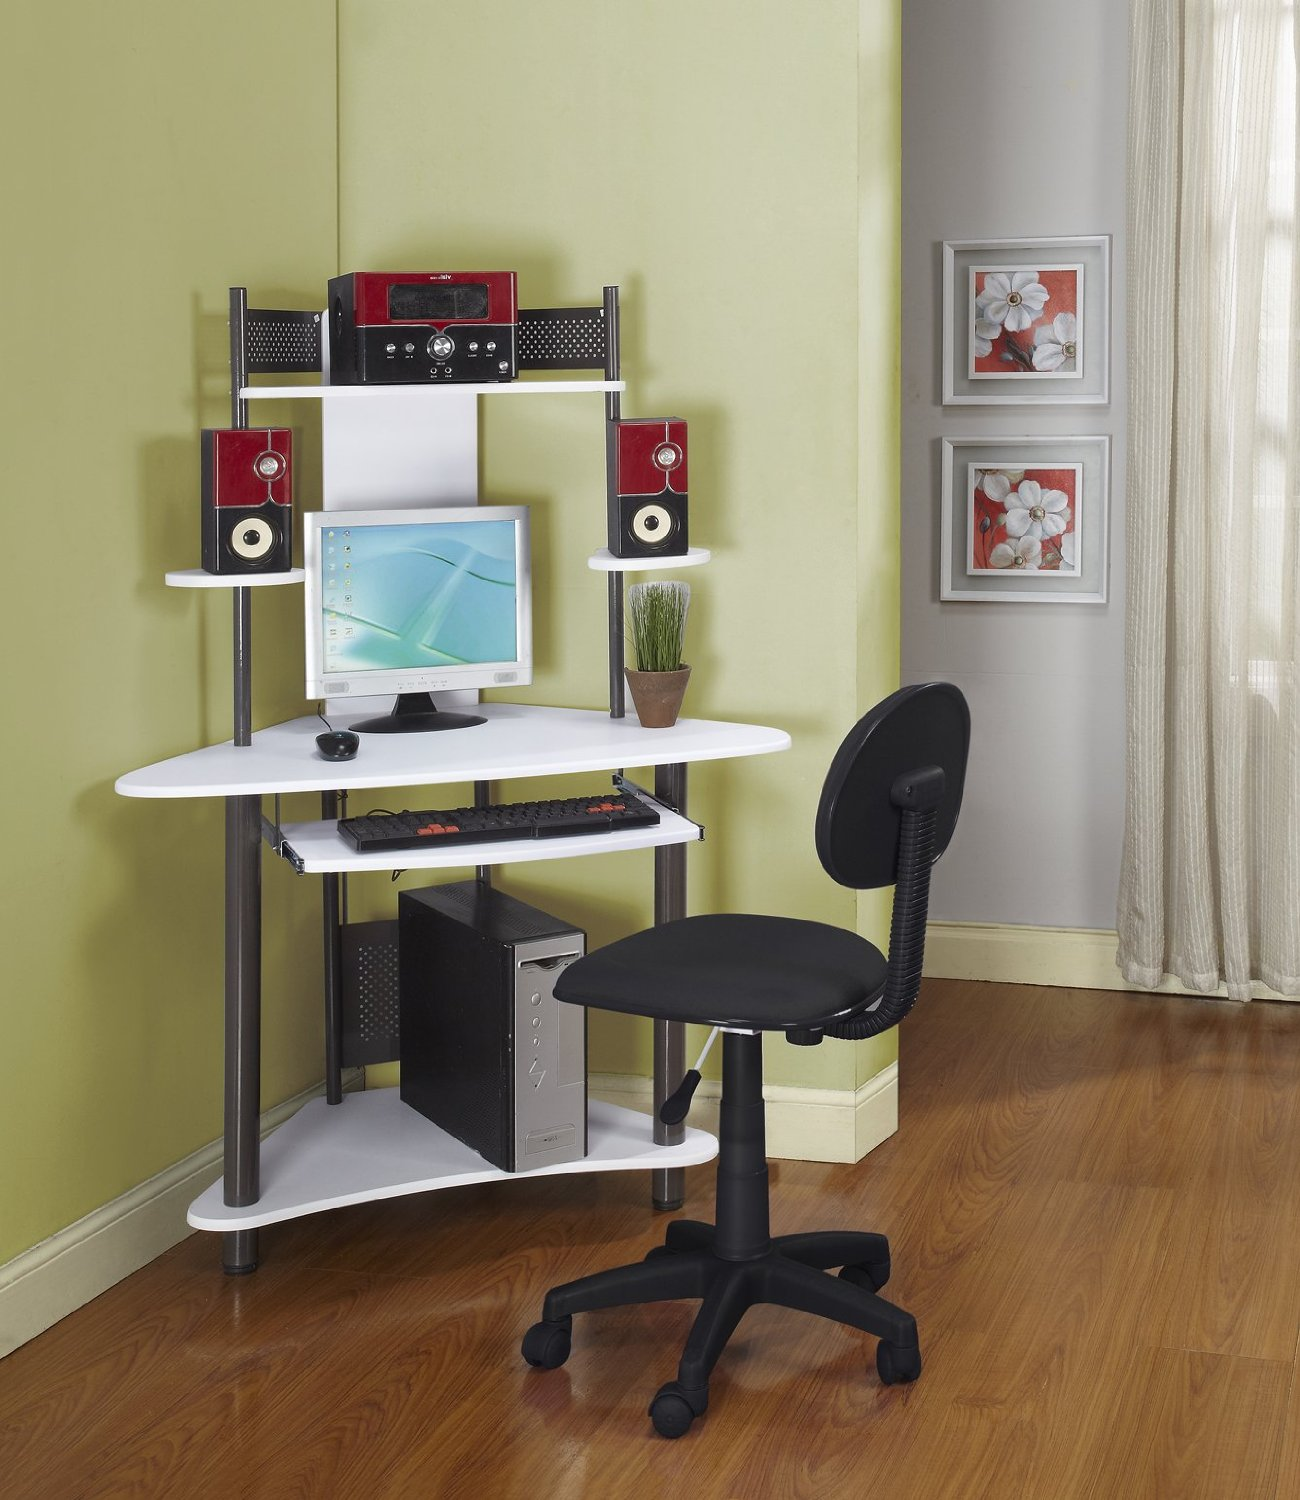 Space Saving Home Office Ideas with IKEA Desks for Small ...